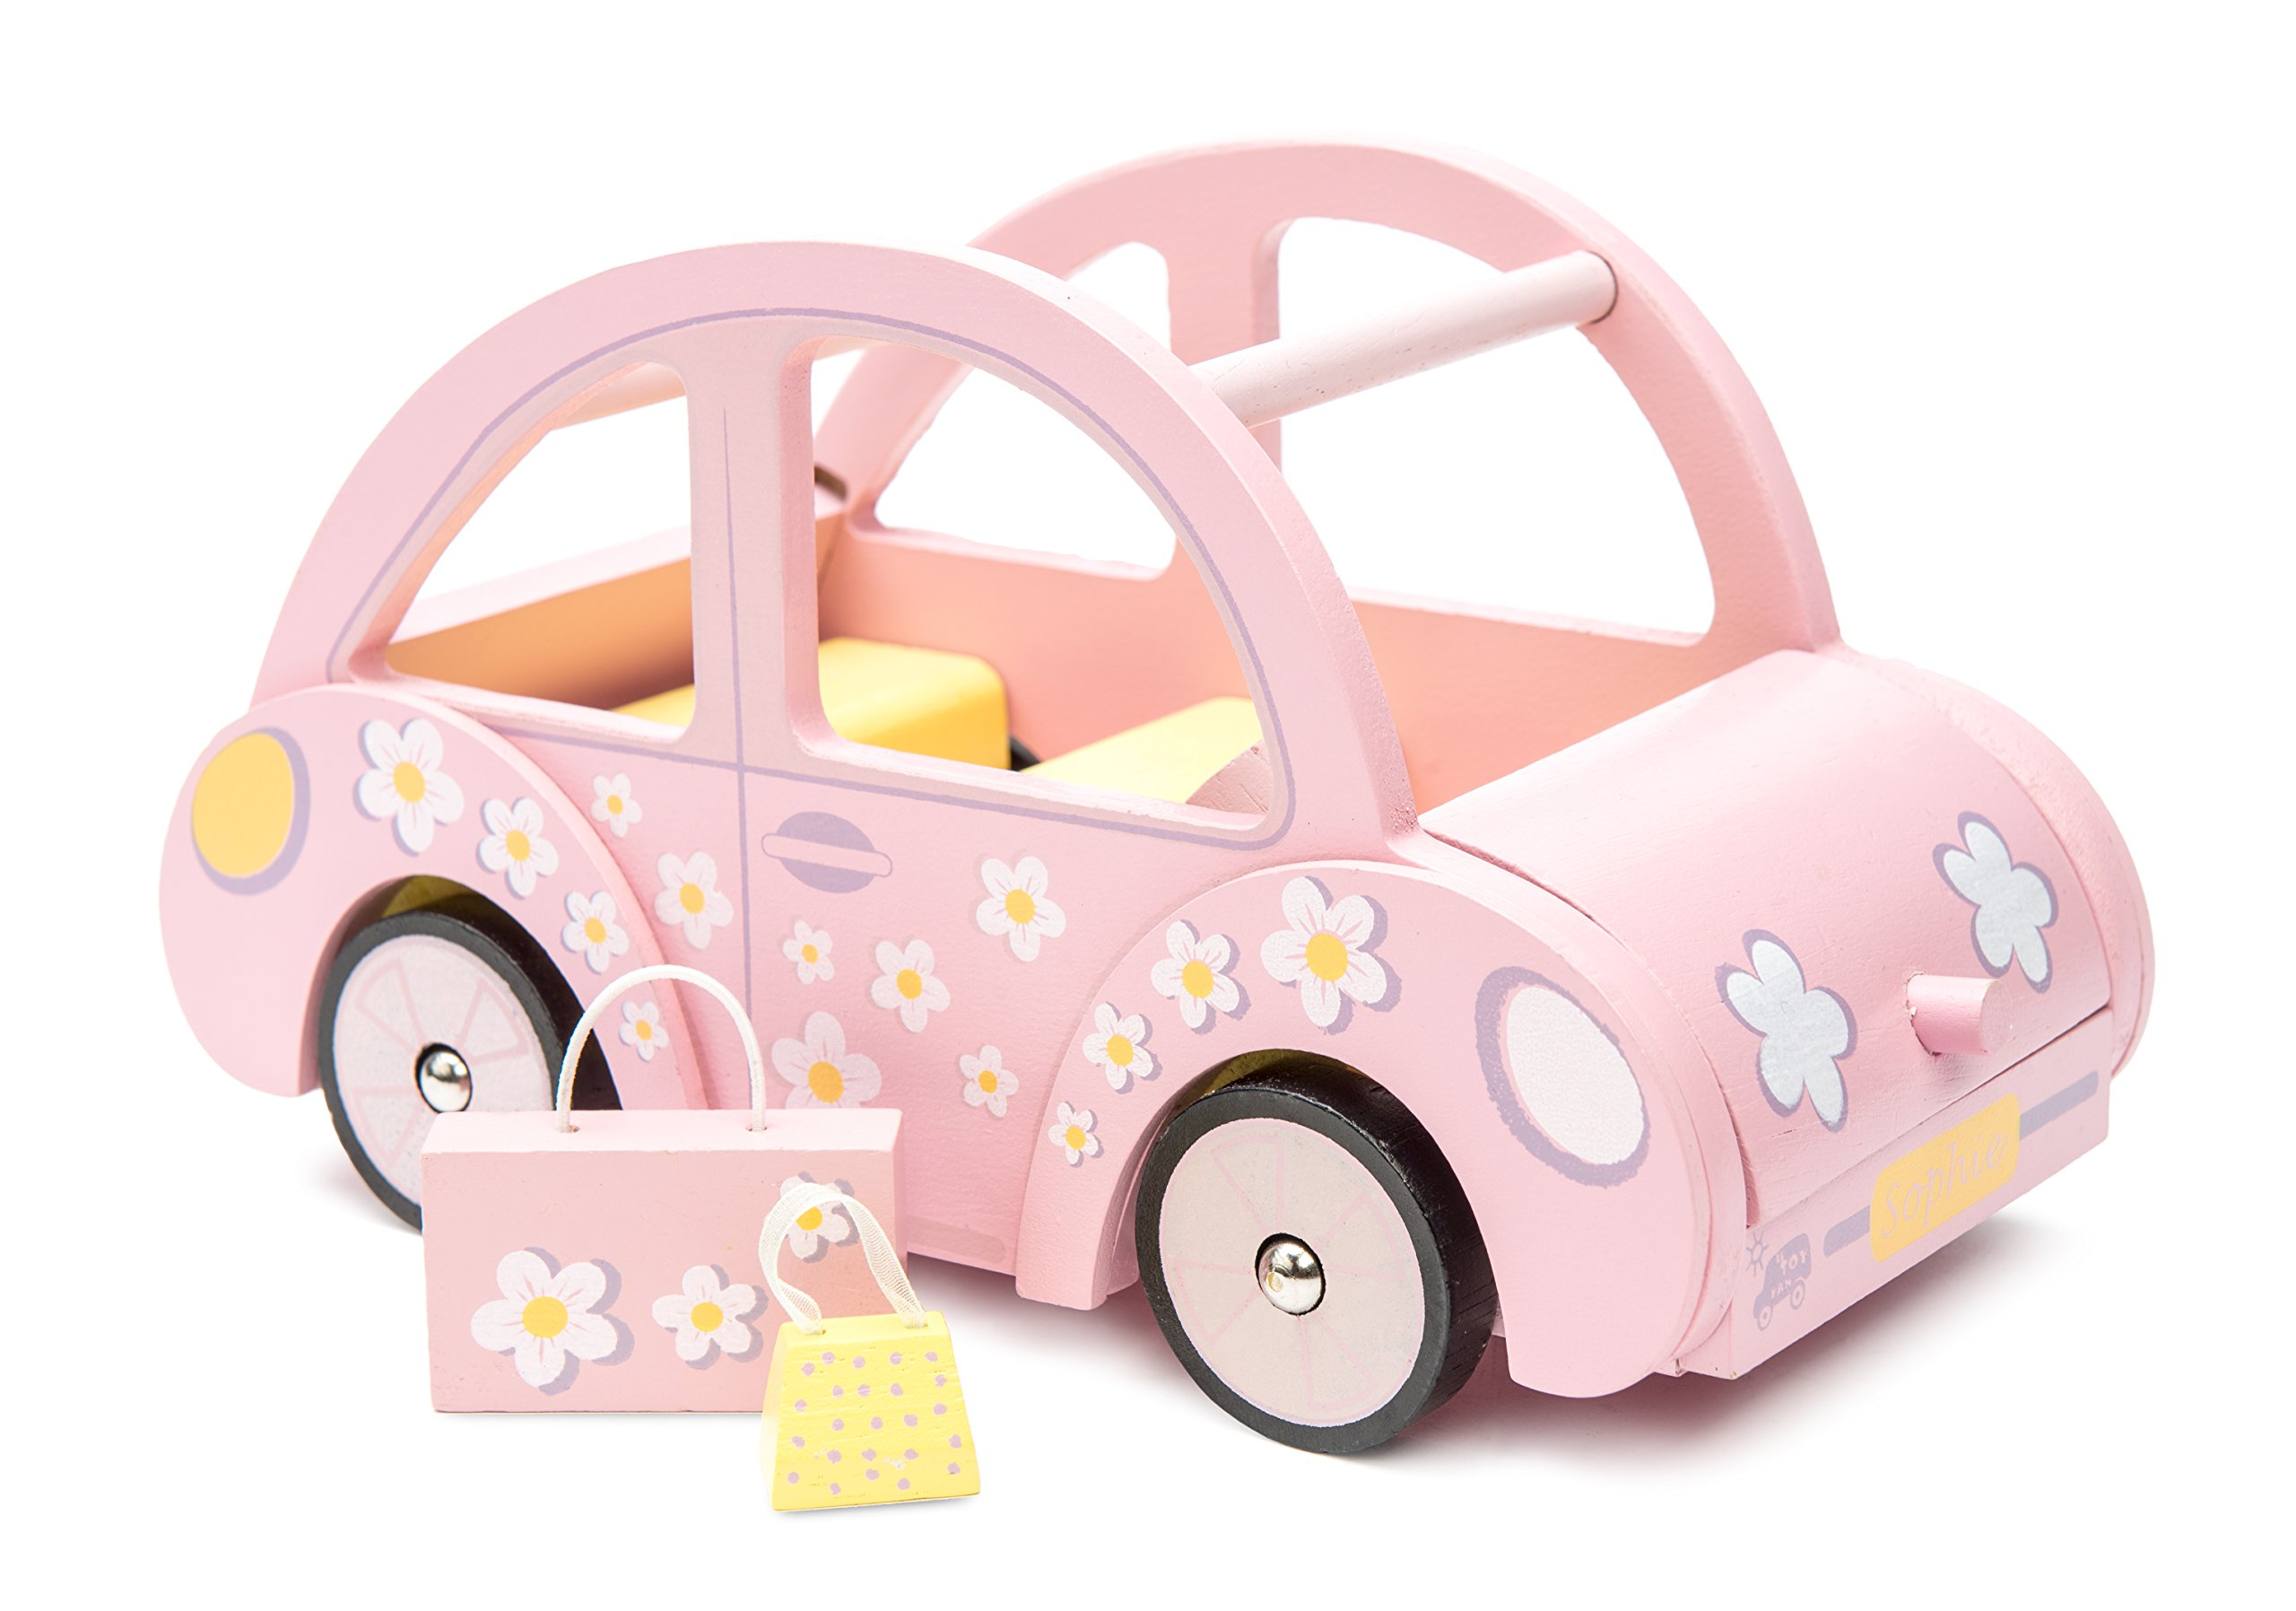 Le Toy Van Daisylane Sophie S Car Toy Wooden Car Accessories Play Set For Dolls Houses Girls Or Boys Dolls House Furniture Sets Suitable For Ages 3 Buy Online